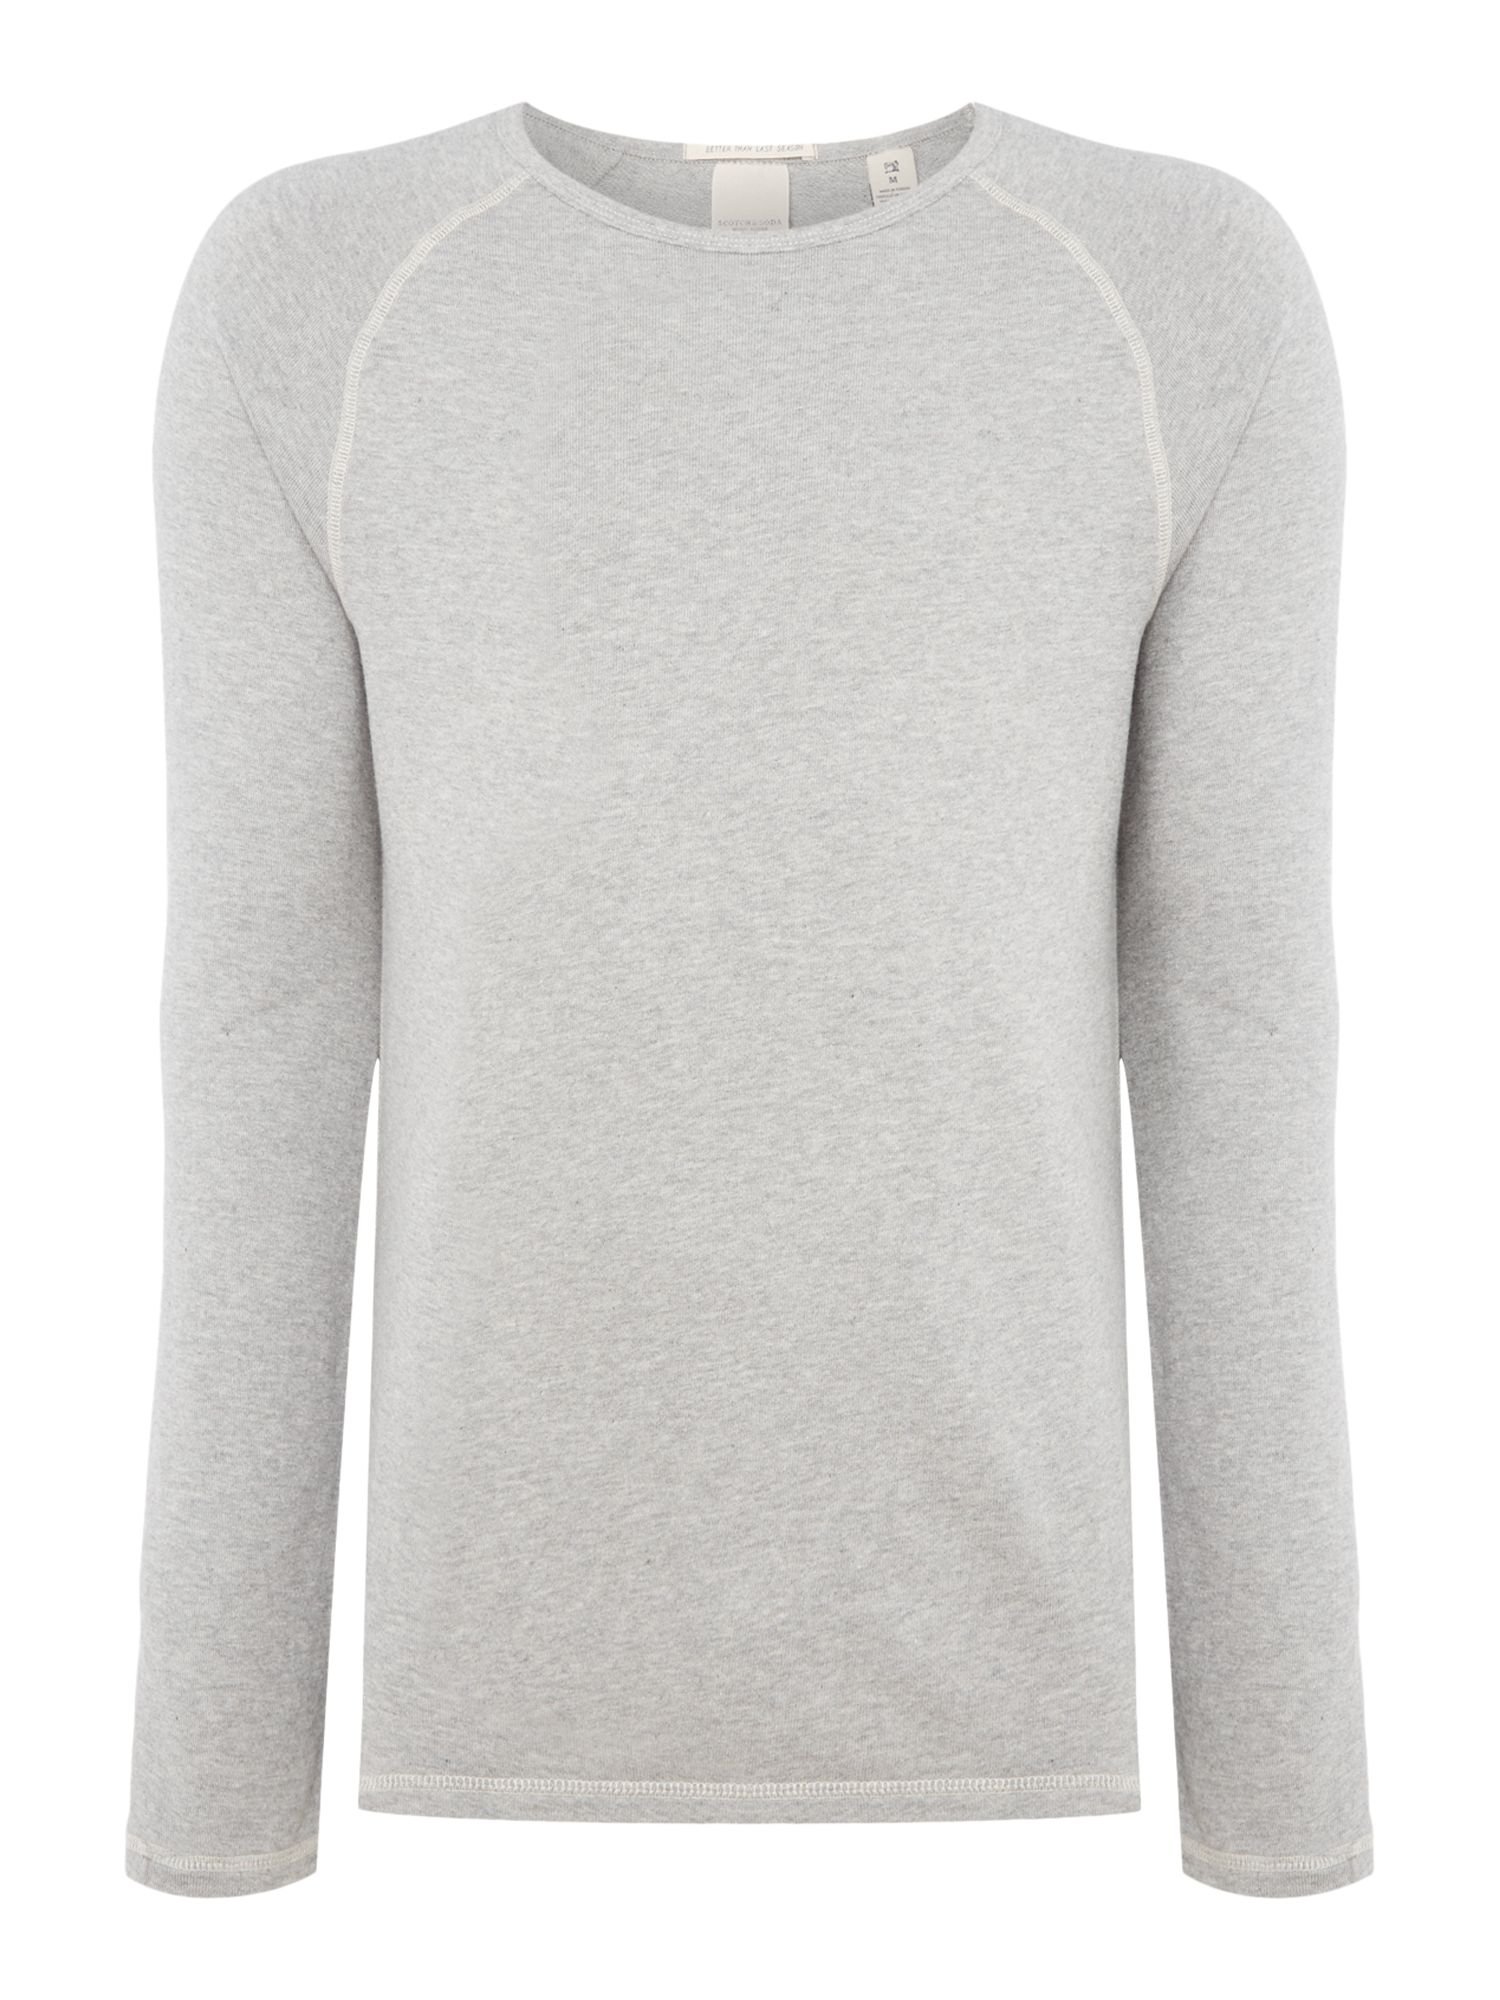 Men's Scotch & Soda Home Alone Long Sleeve Tee, Grey